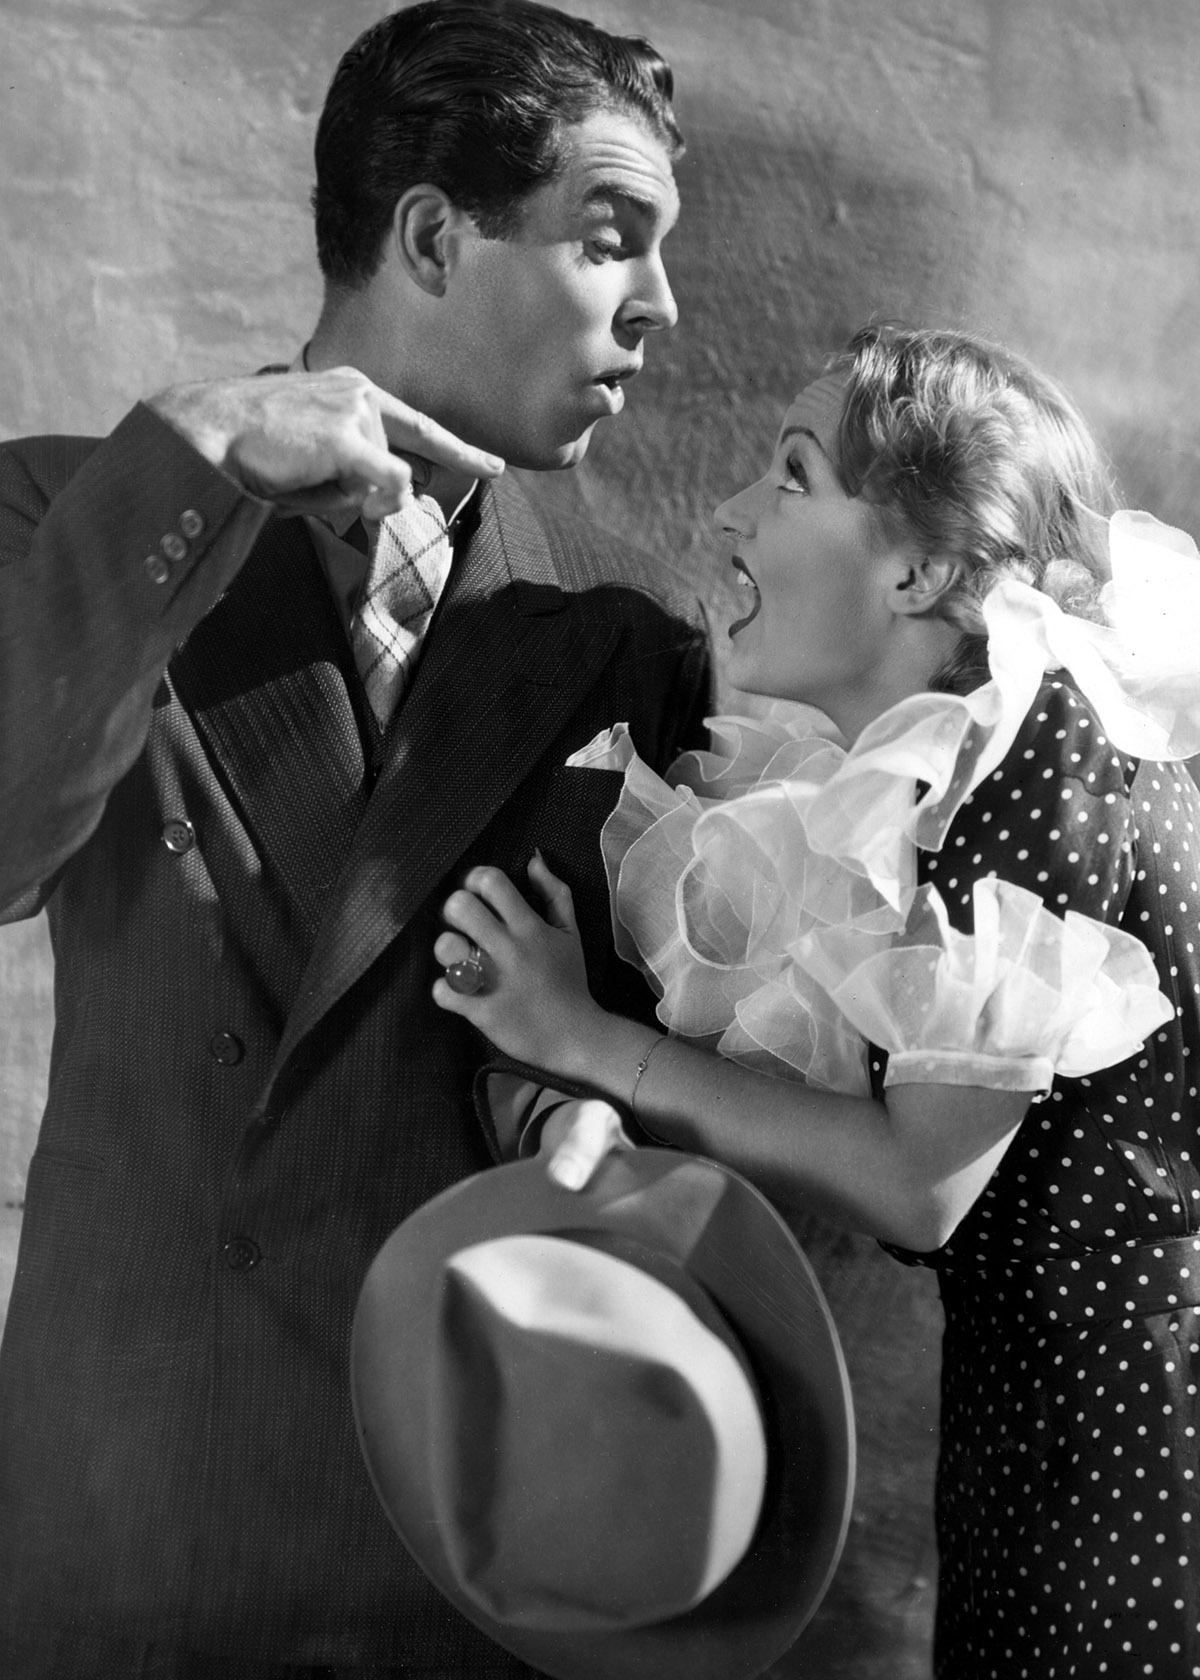 Fantastic Hands Fred Macmurray Movies List Fred Macmurray Movie House Cards Hands Across Table Turner Classic Movies Fred Macmurray Carole Lombard Carole Lombard Fred Macmurray houzz 01 Fred Macmurray Movies